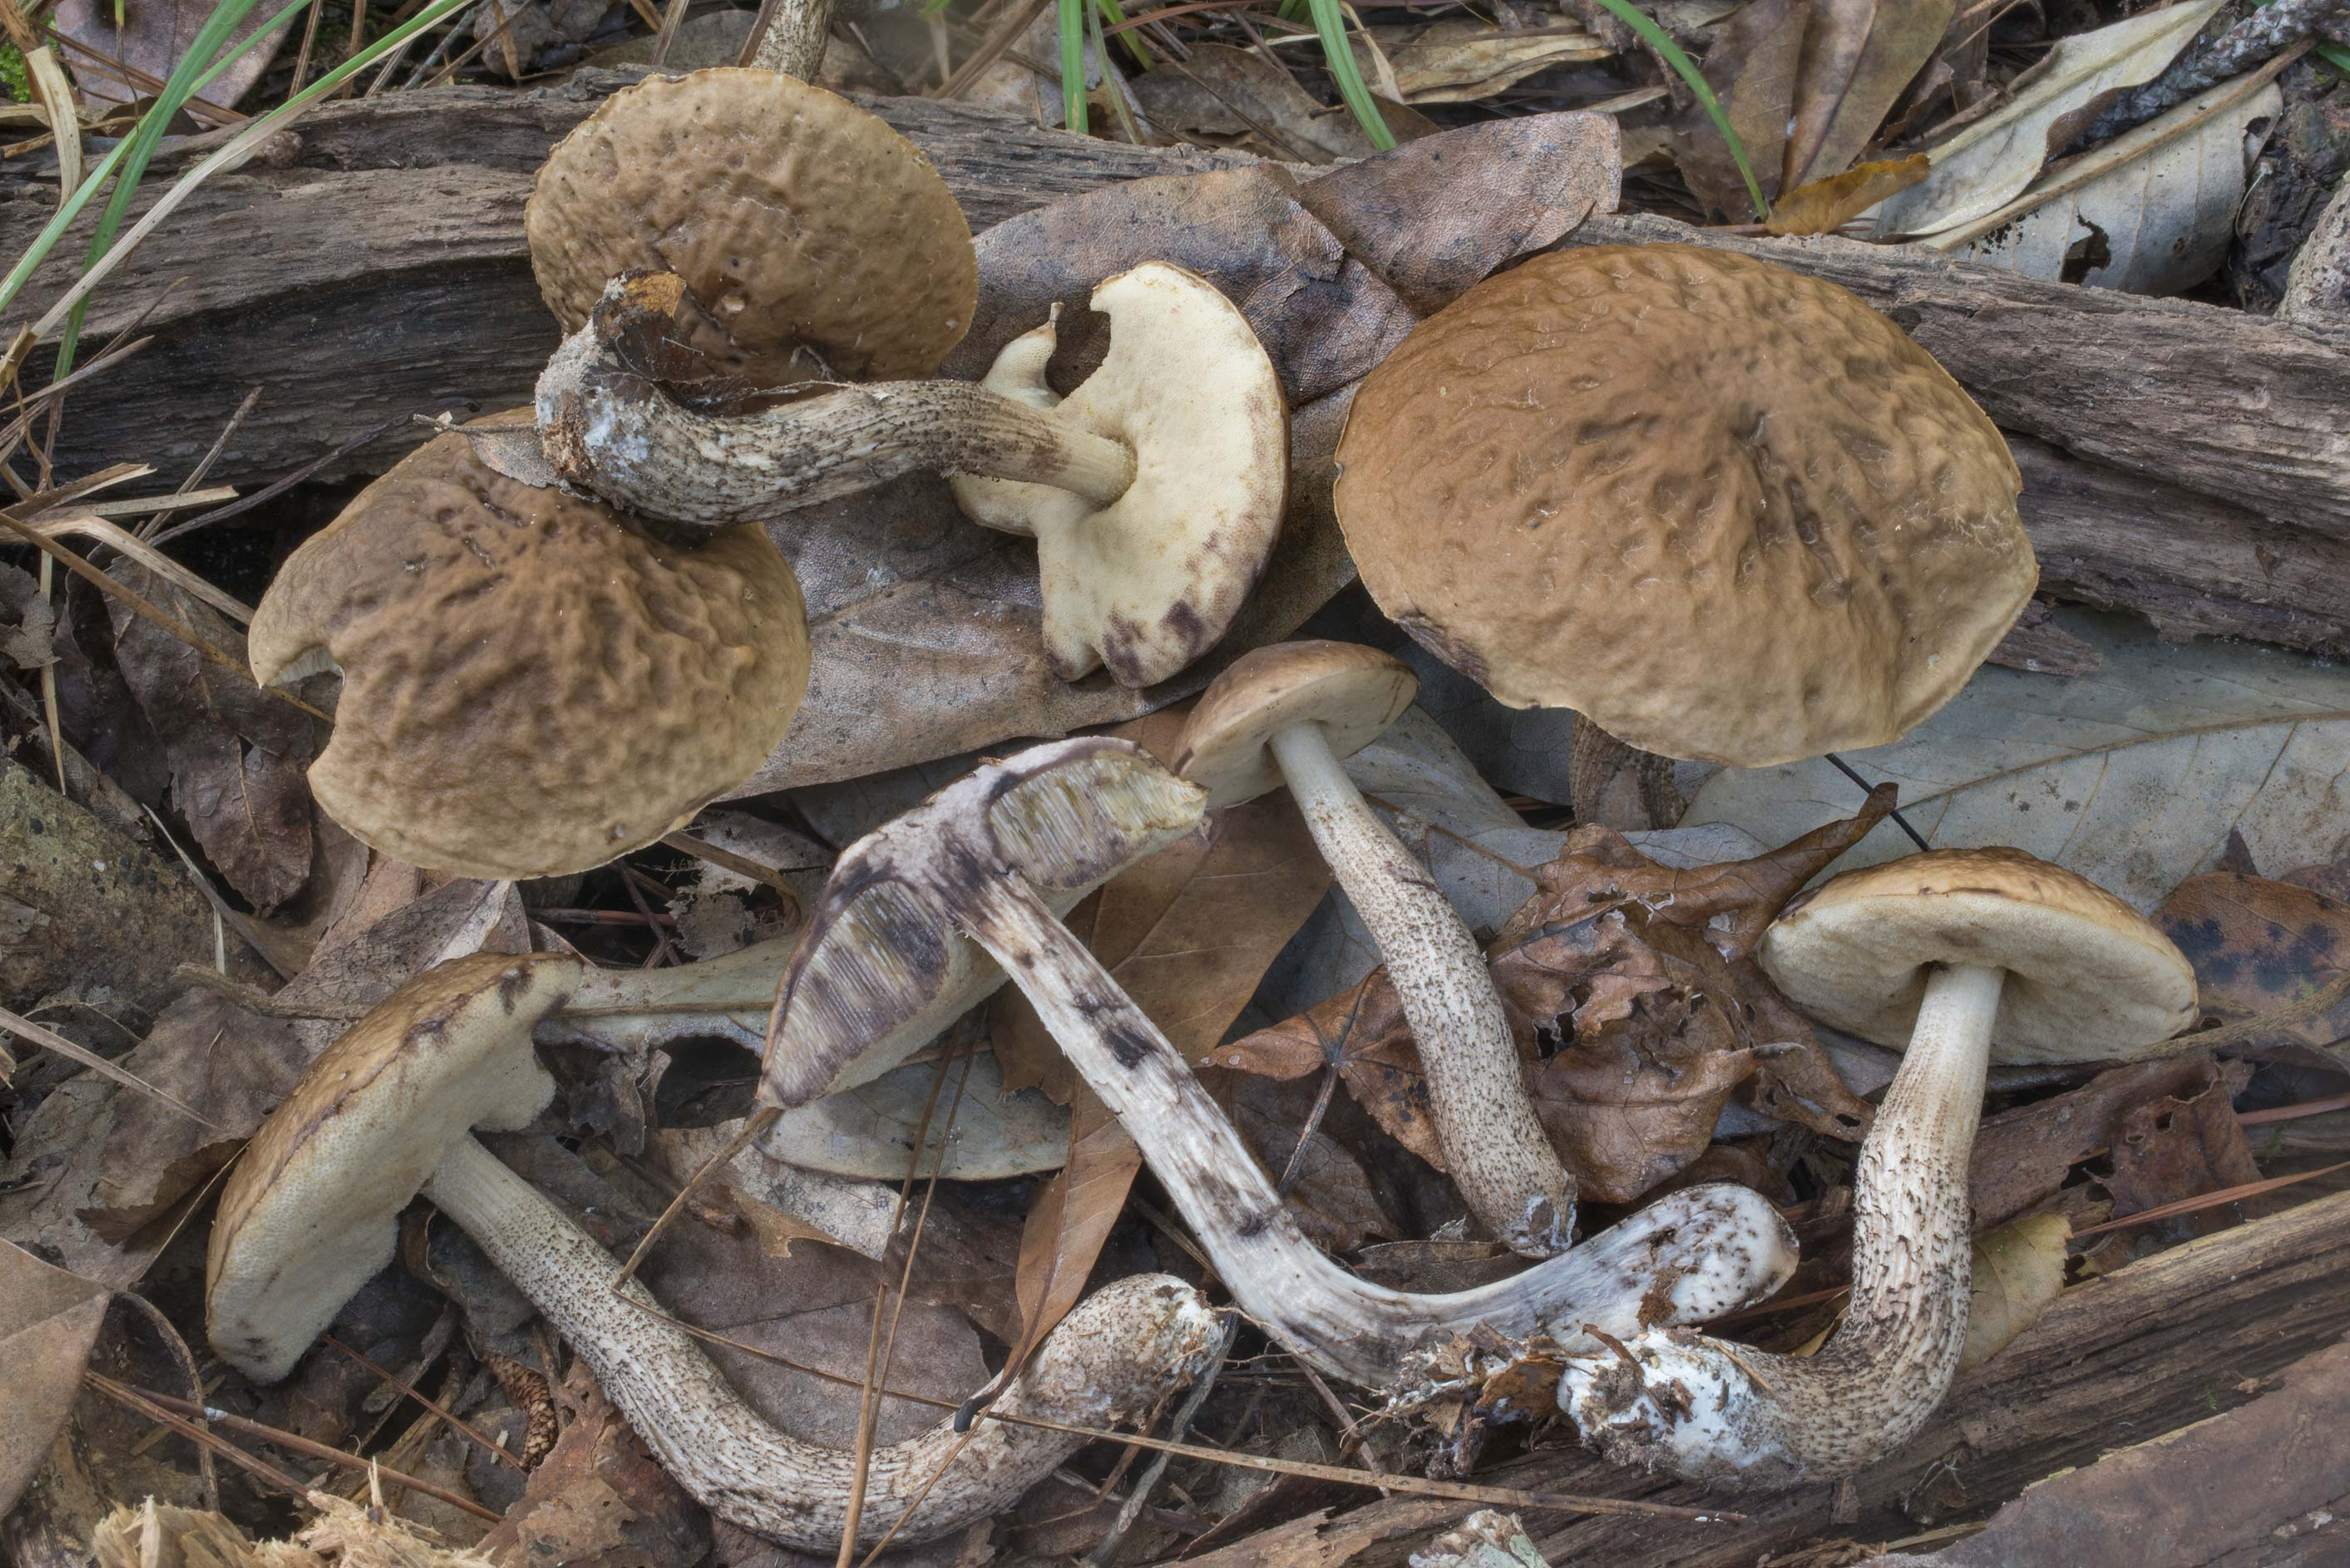 Dissected Snell's bolete mushrooms (Leccinum...National Forest. Shepherd, Texas